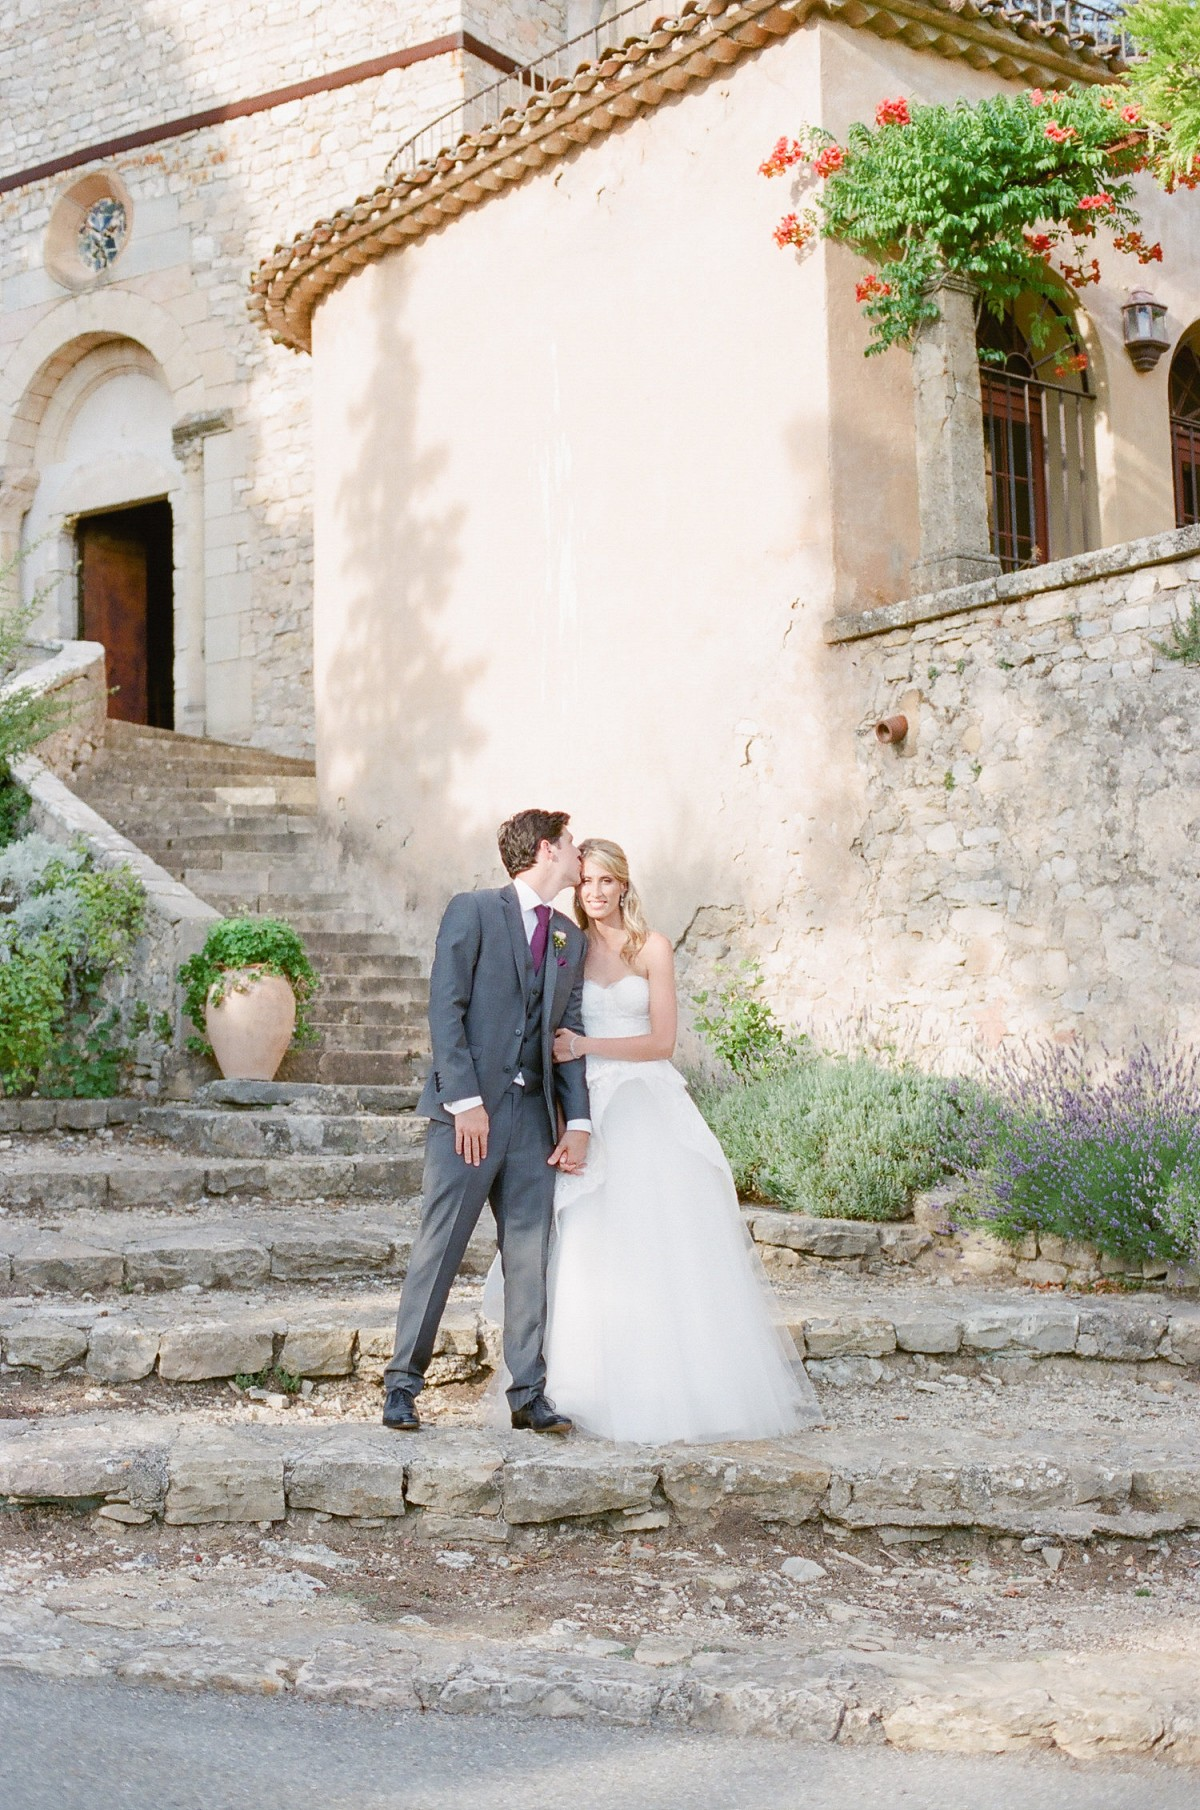 Ryan and Cali's Classic Destination Wedding in Provence